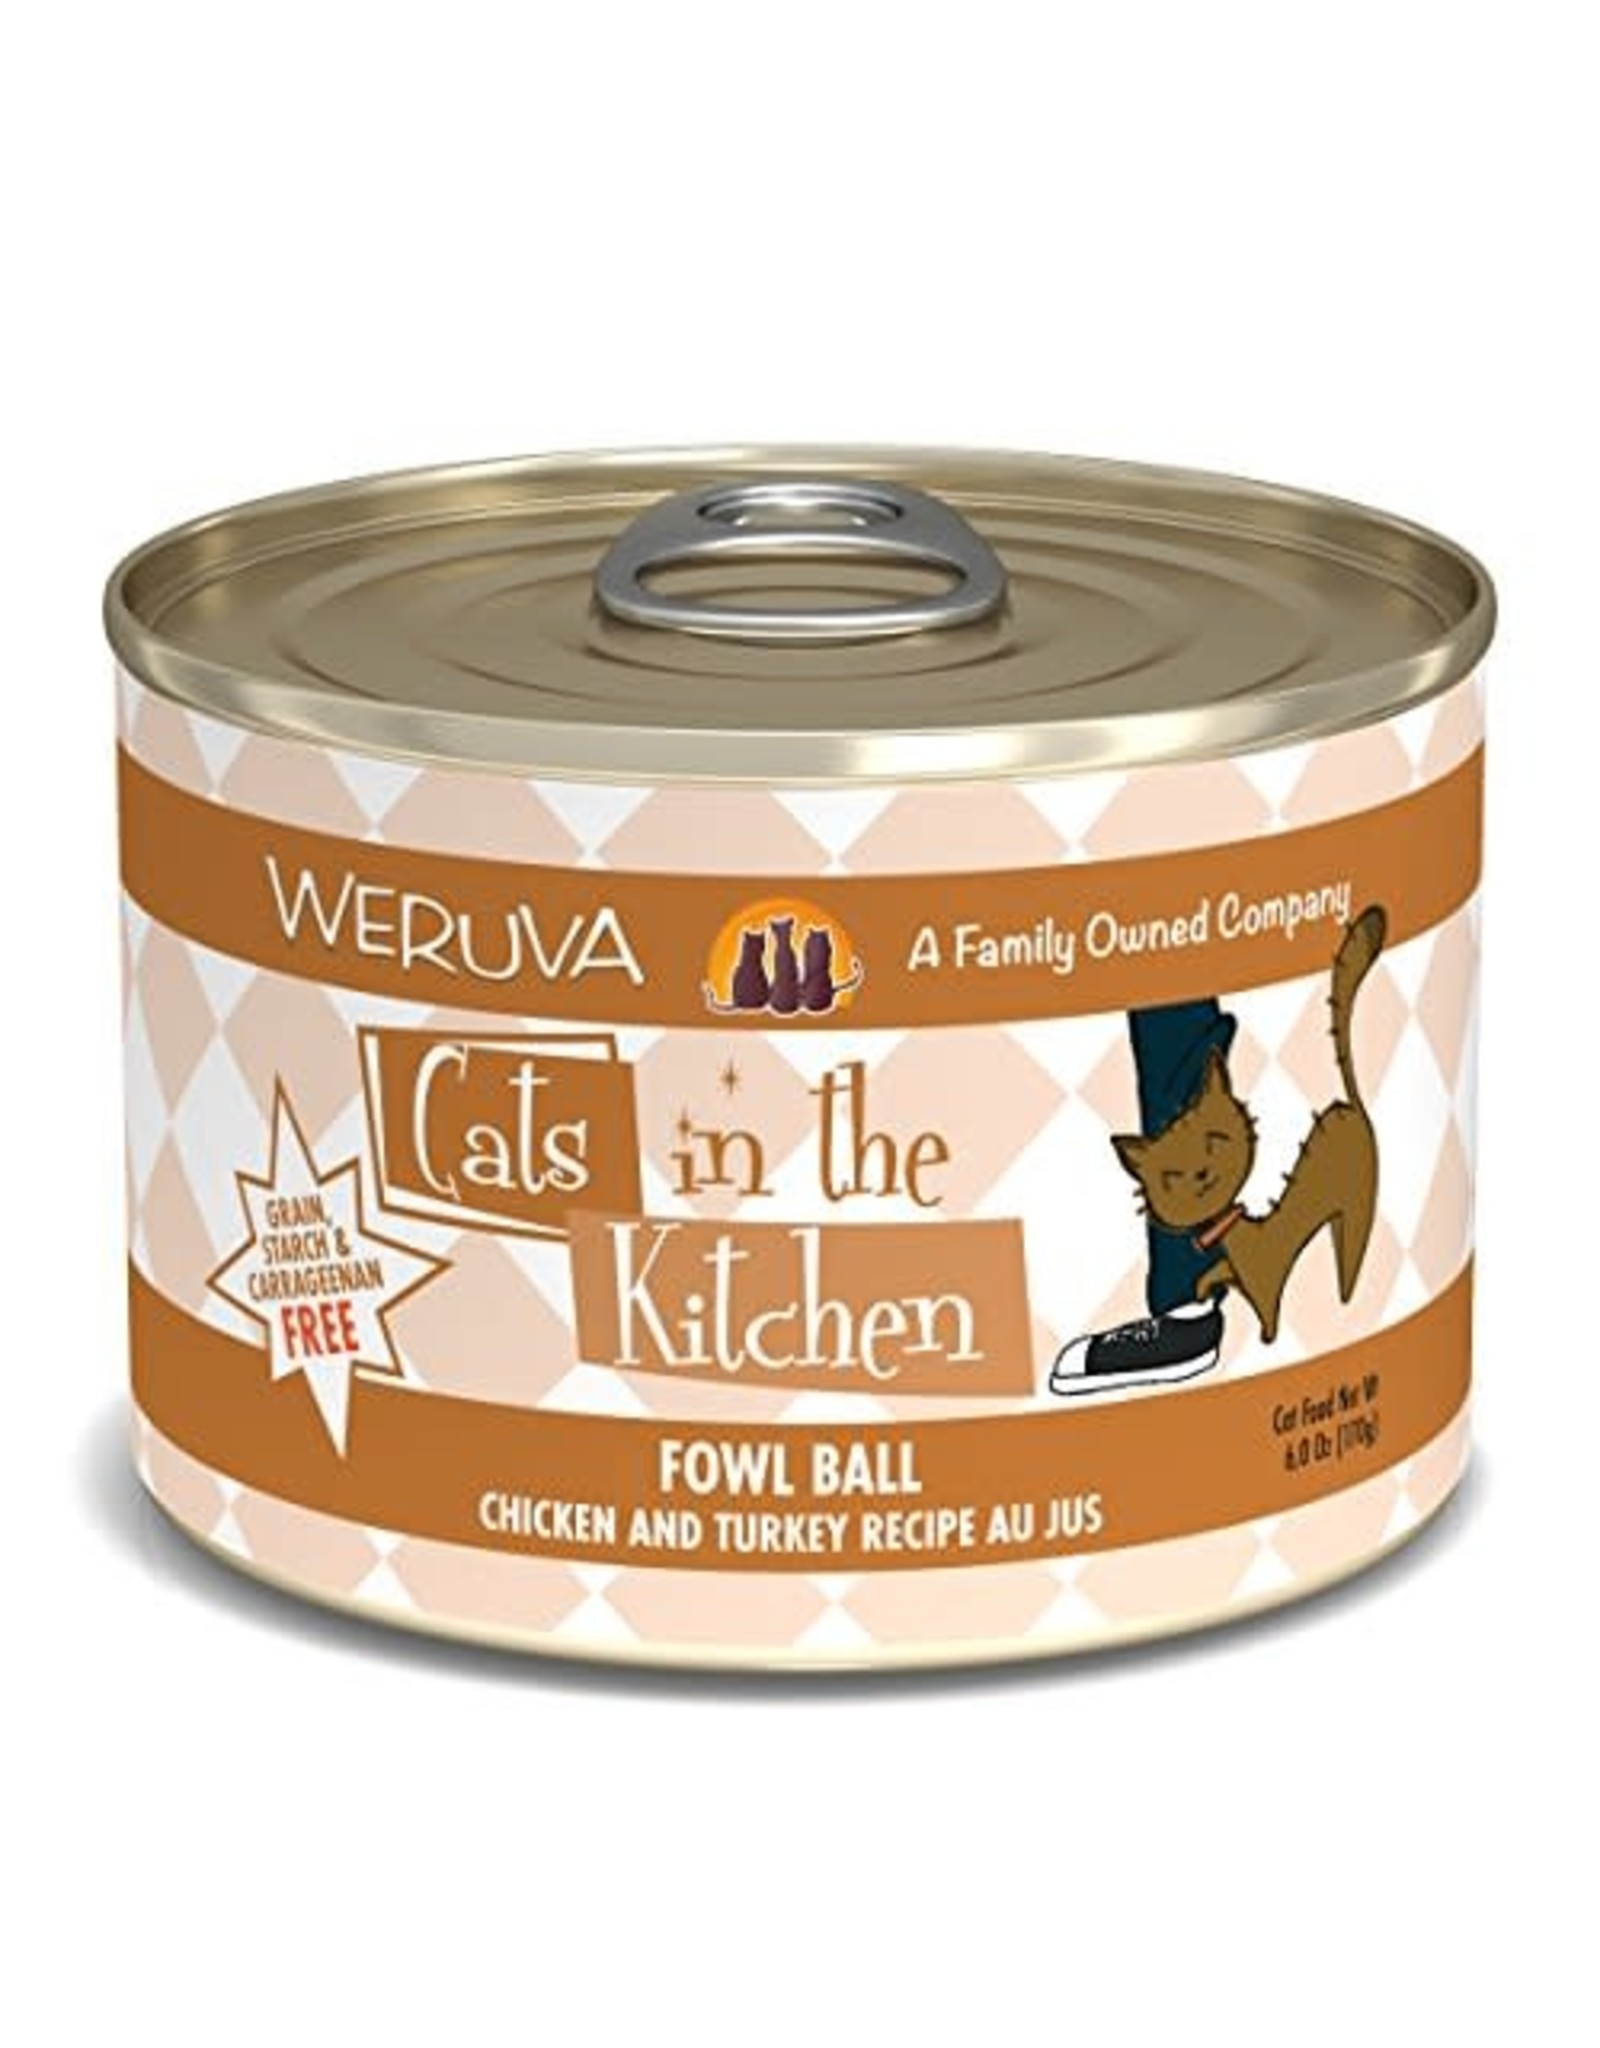 Weruva Cats in the kitchen Fowl Ball 3.2oz